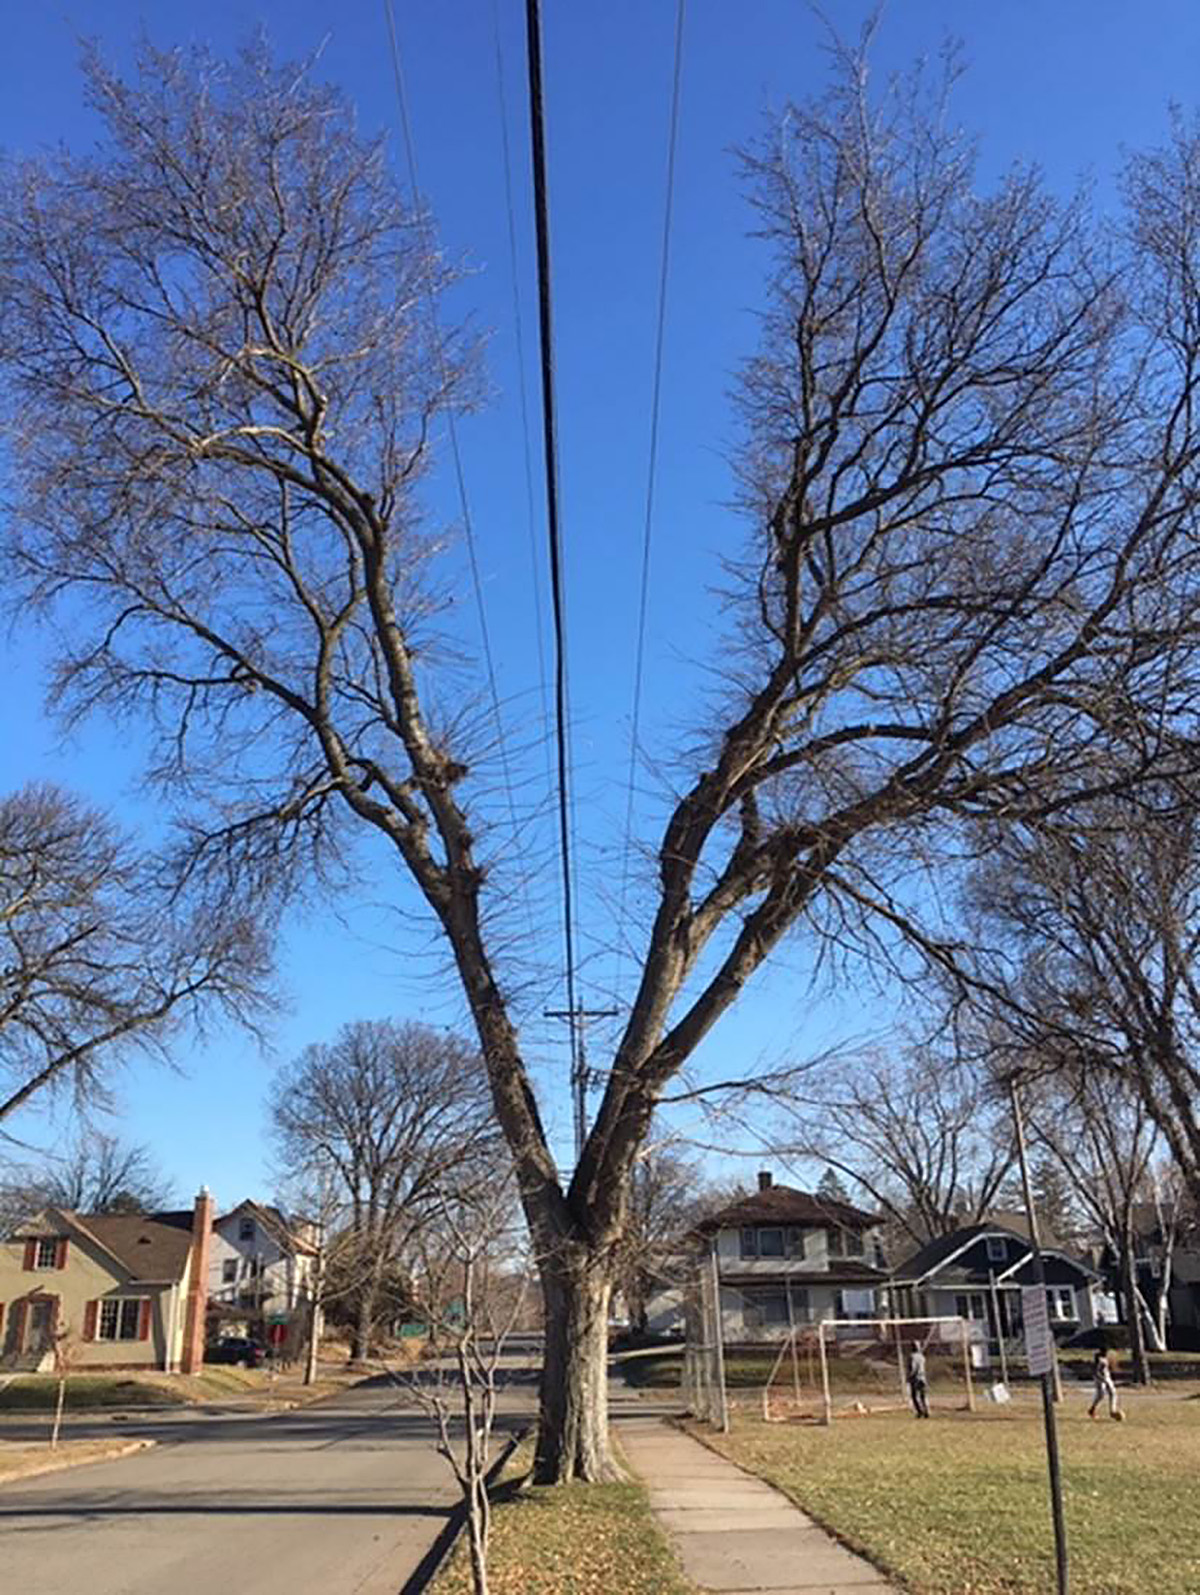 E. 32nd Street in Longfellow in south Minneapolis features a string of trees with deep